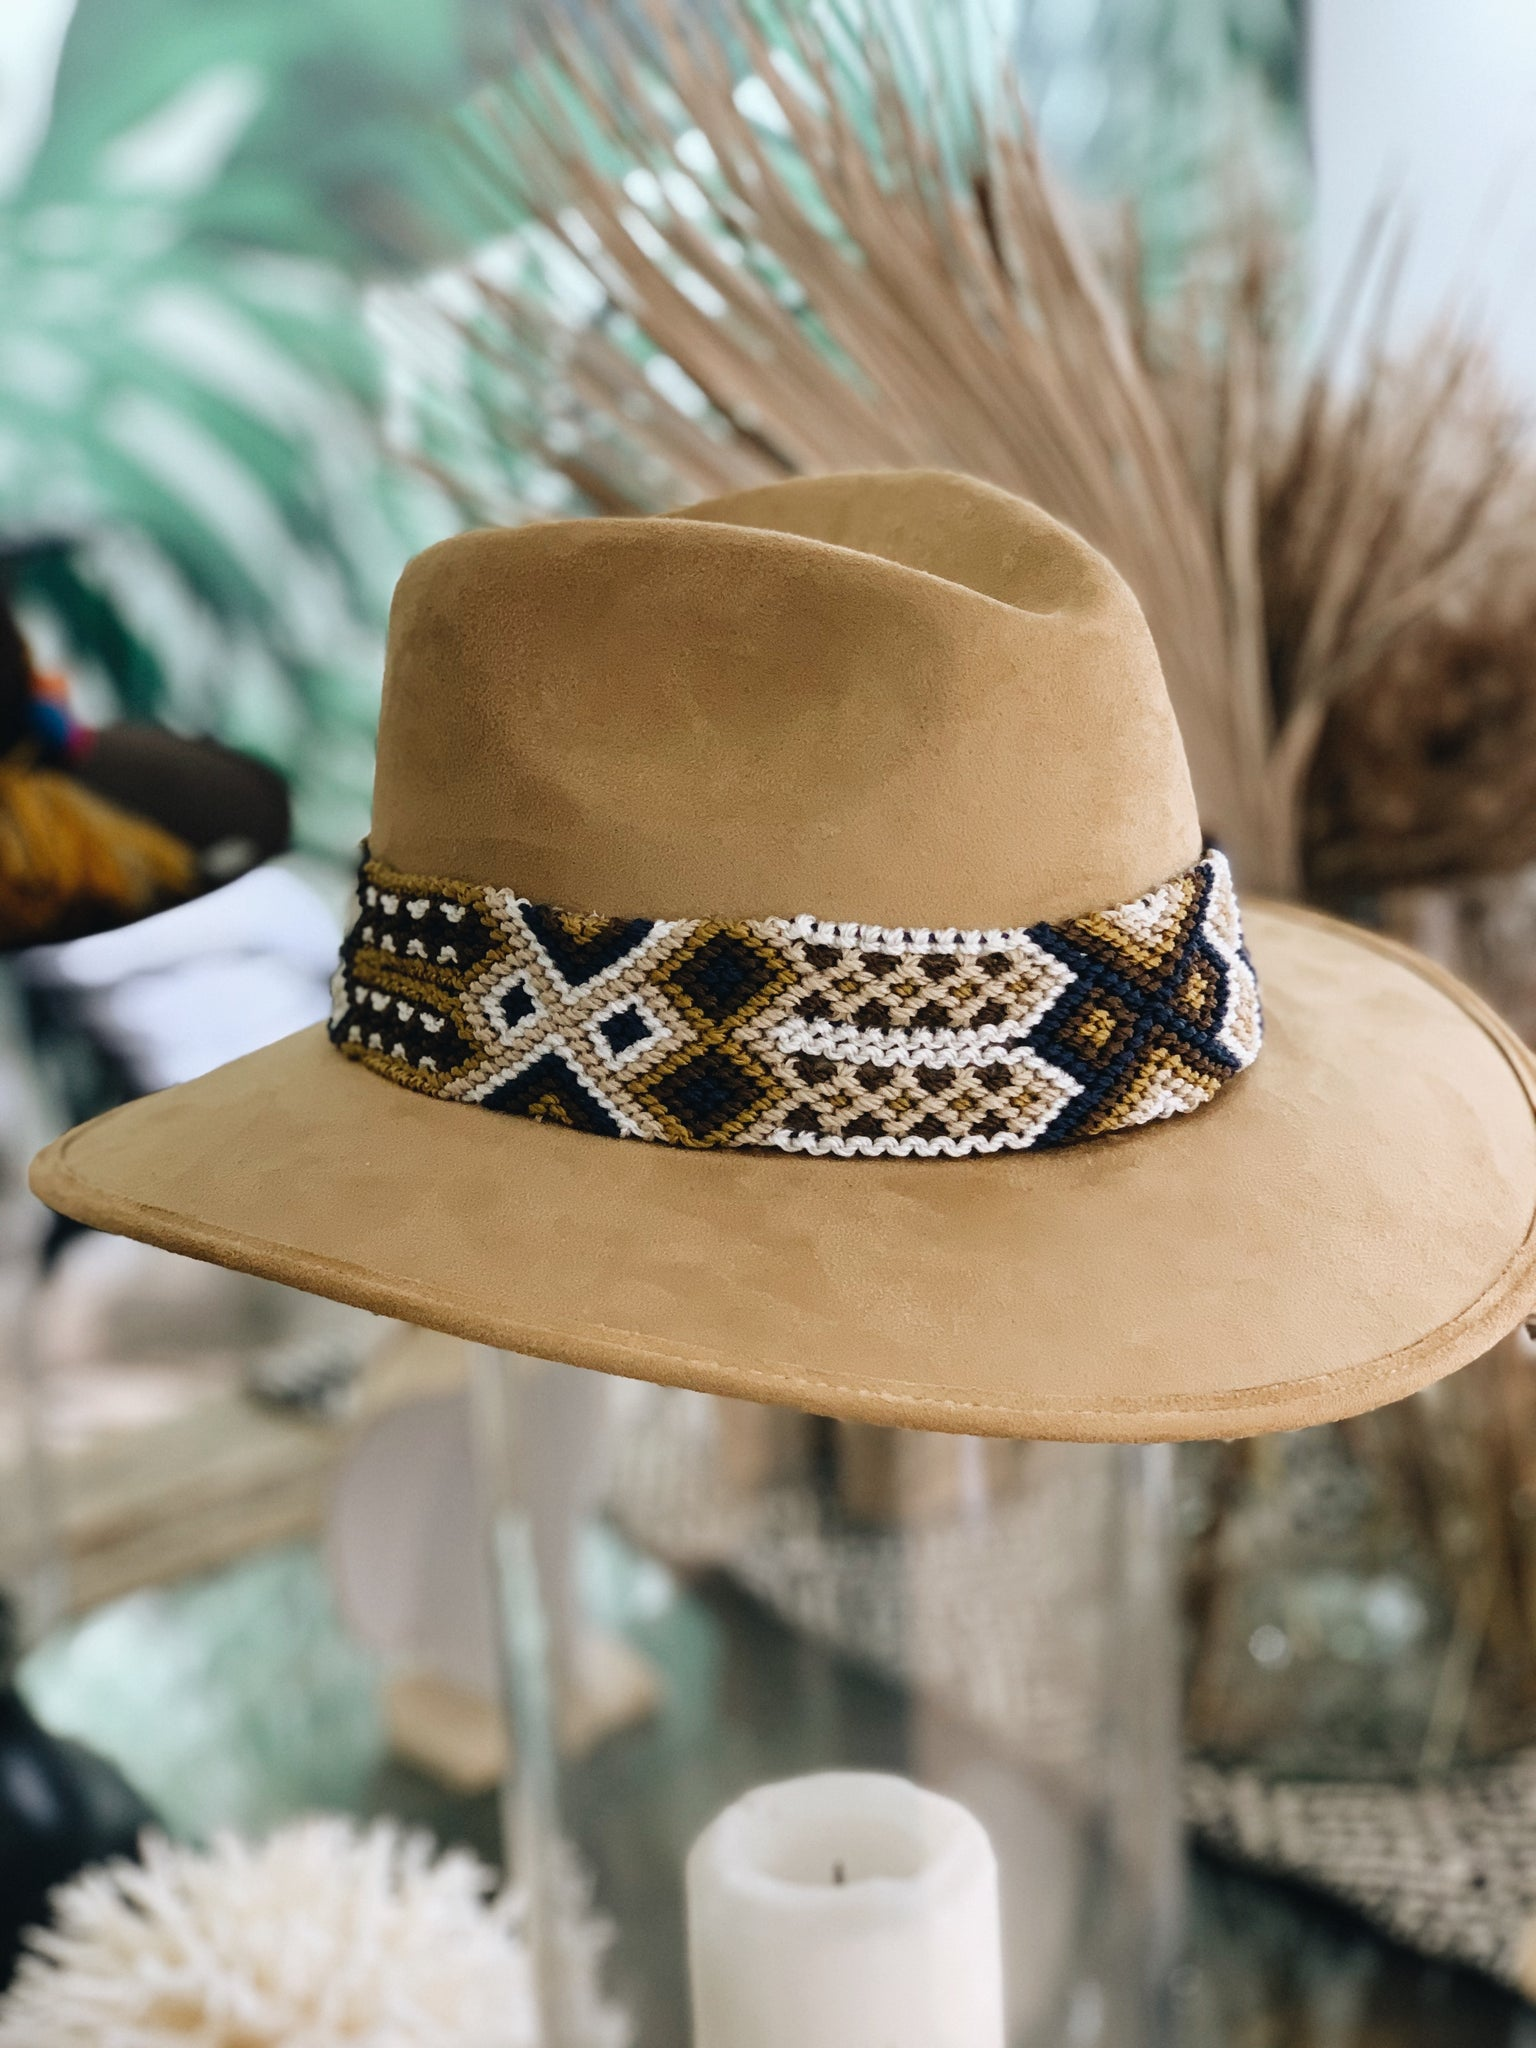 Maria Chilli Tan Suede Hat - Milou Palm Beach